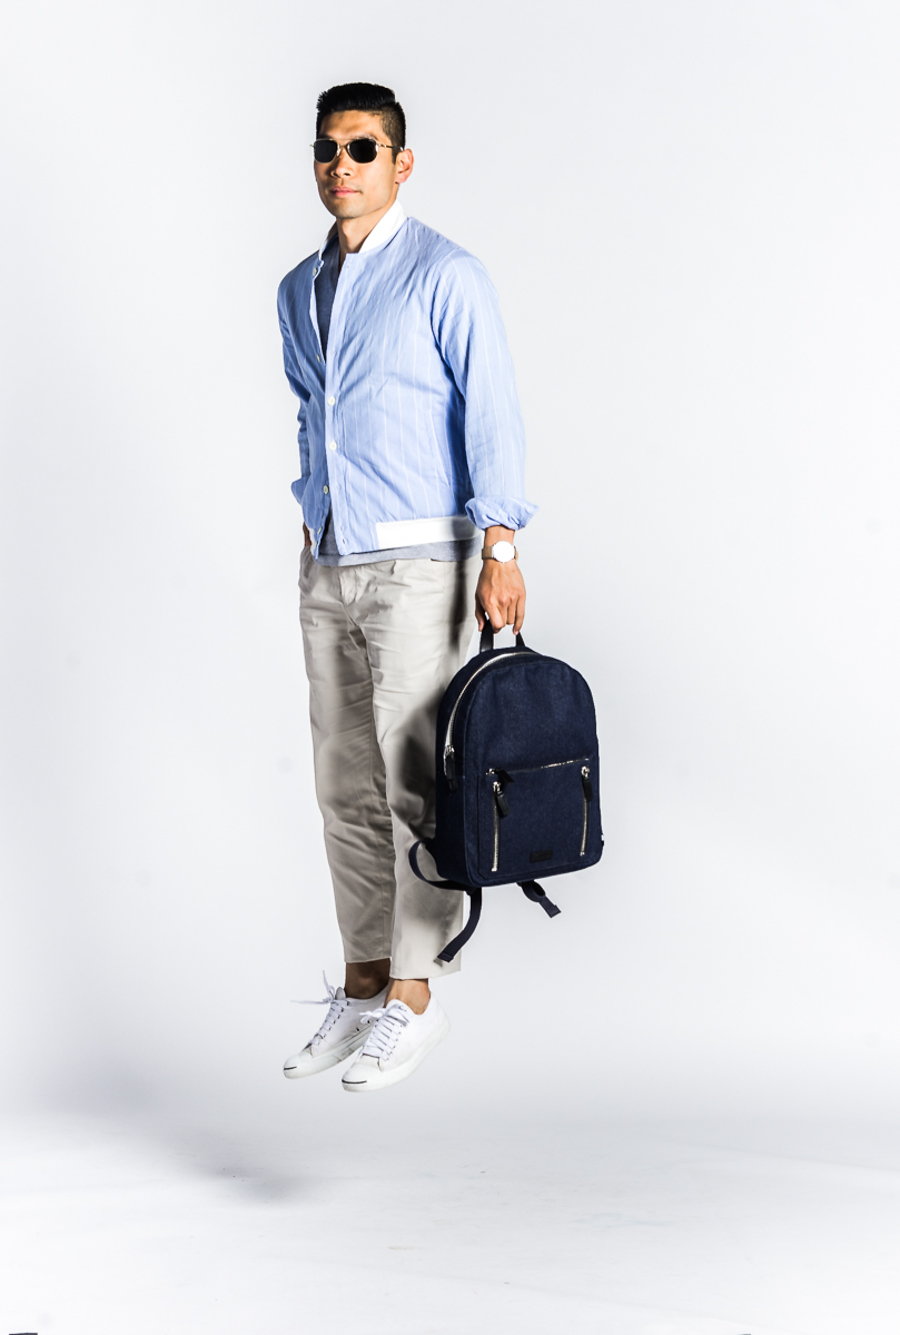 BloggerPROJECT NY Levitate Style | Gant Stripe Shirt Jacket, Uri Minkoff Backpack, Menswear, Project NY